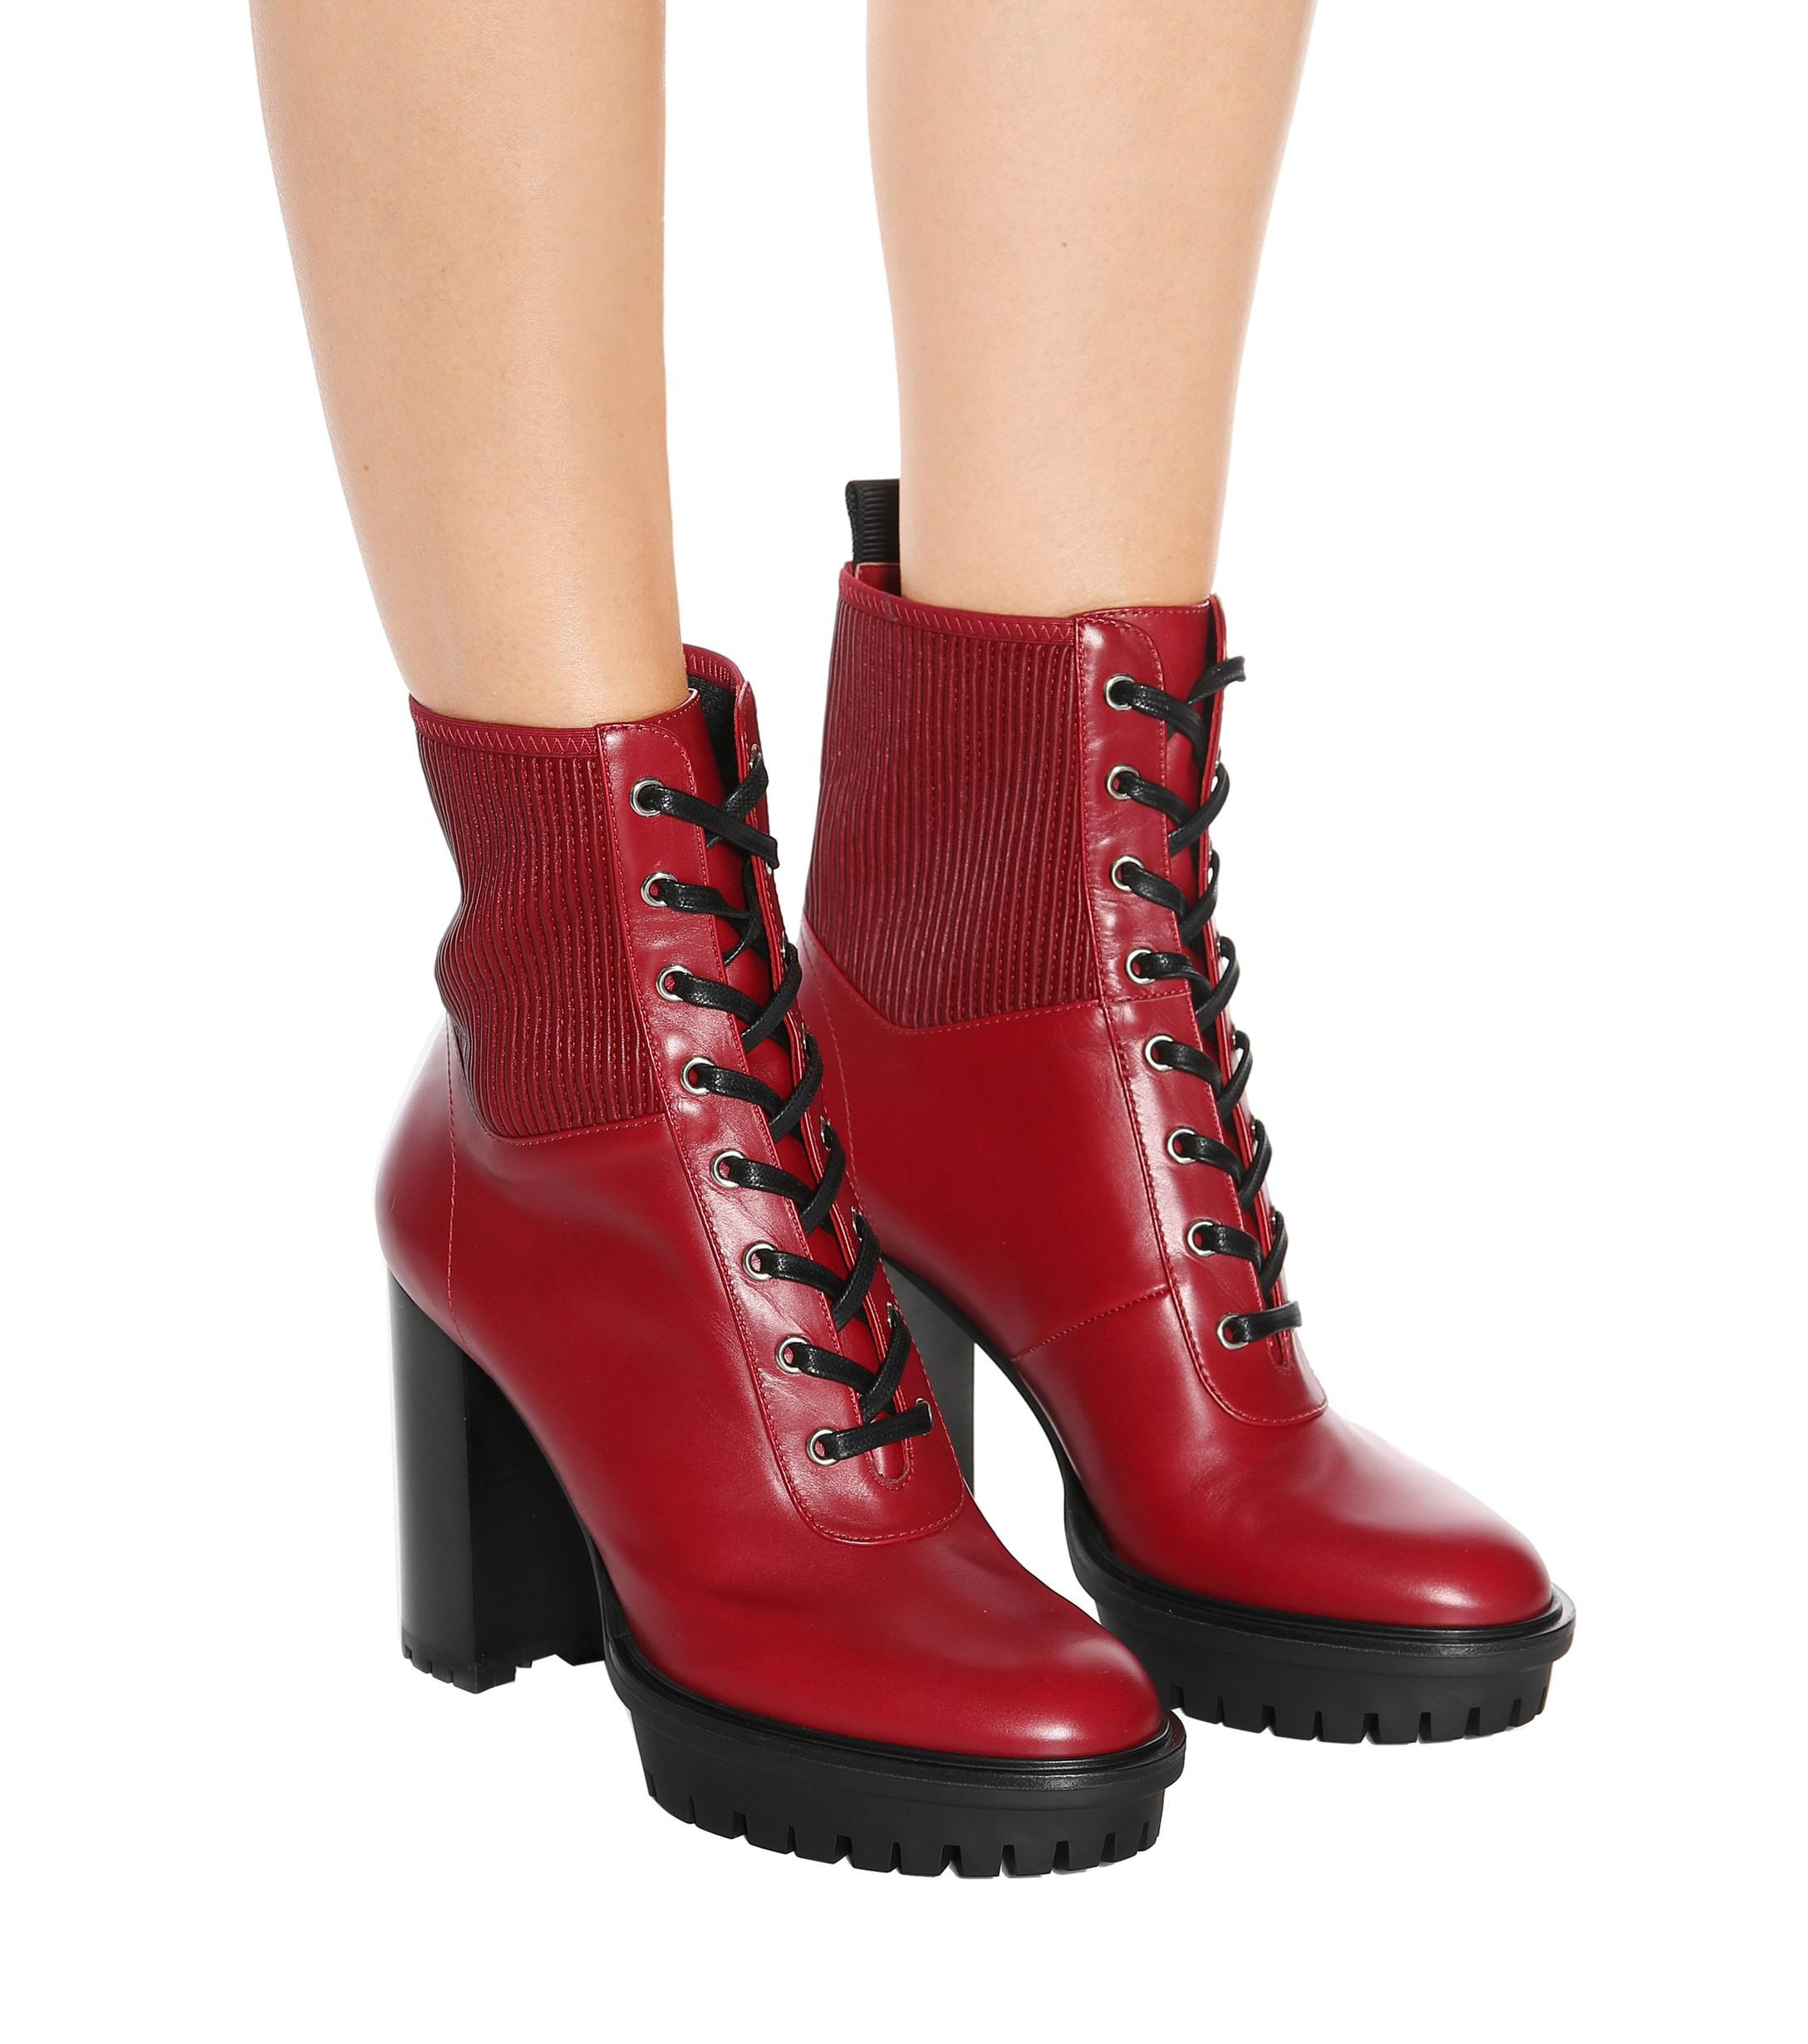 6dd3a6124e217 Gianvito Rossi - Red Martis 20 Leather Ankle Boots - Lyst. View fullscreen